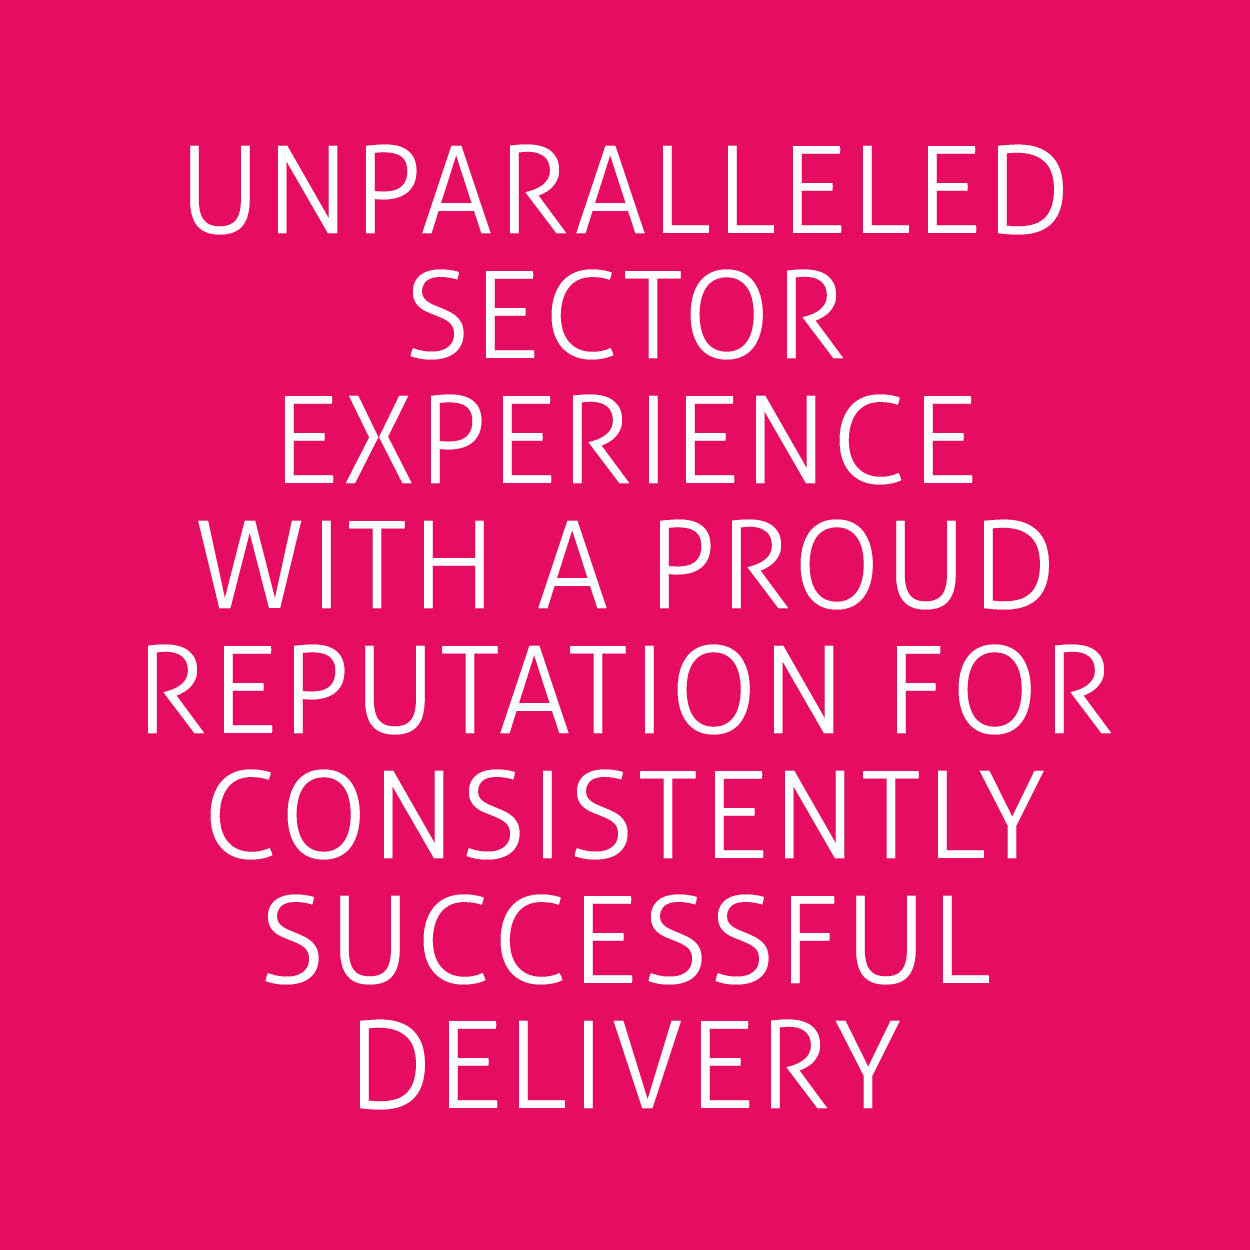 Unparalleled sector experience with a proud reputation for consistently successful delivery.